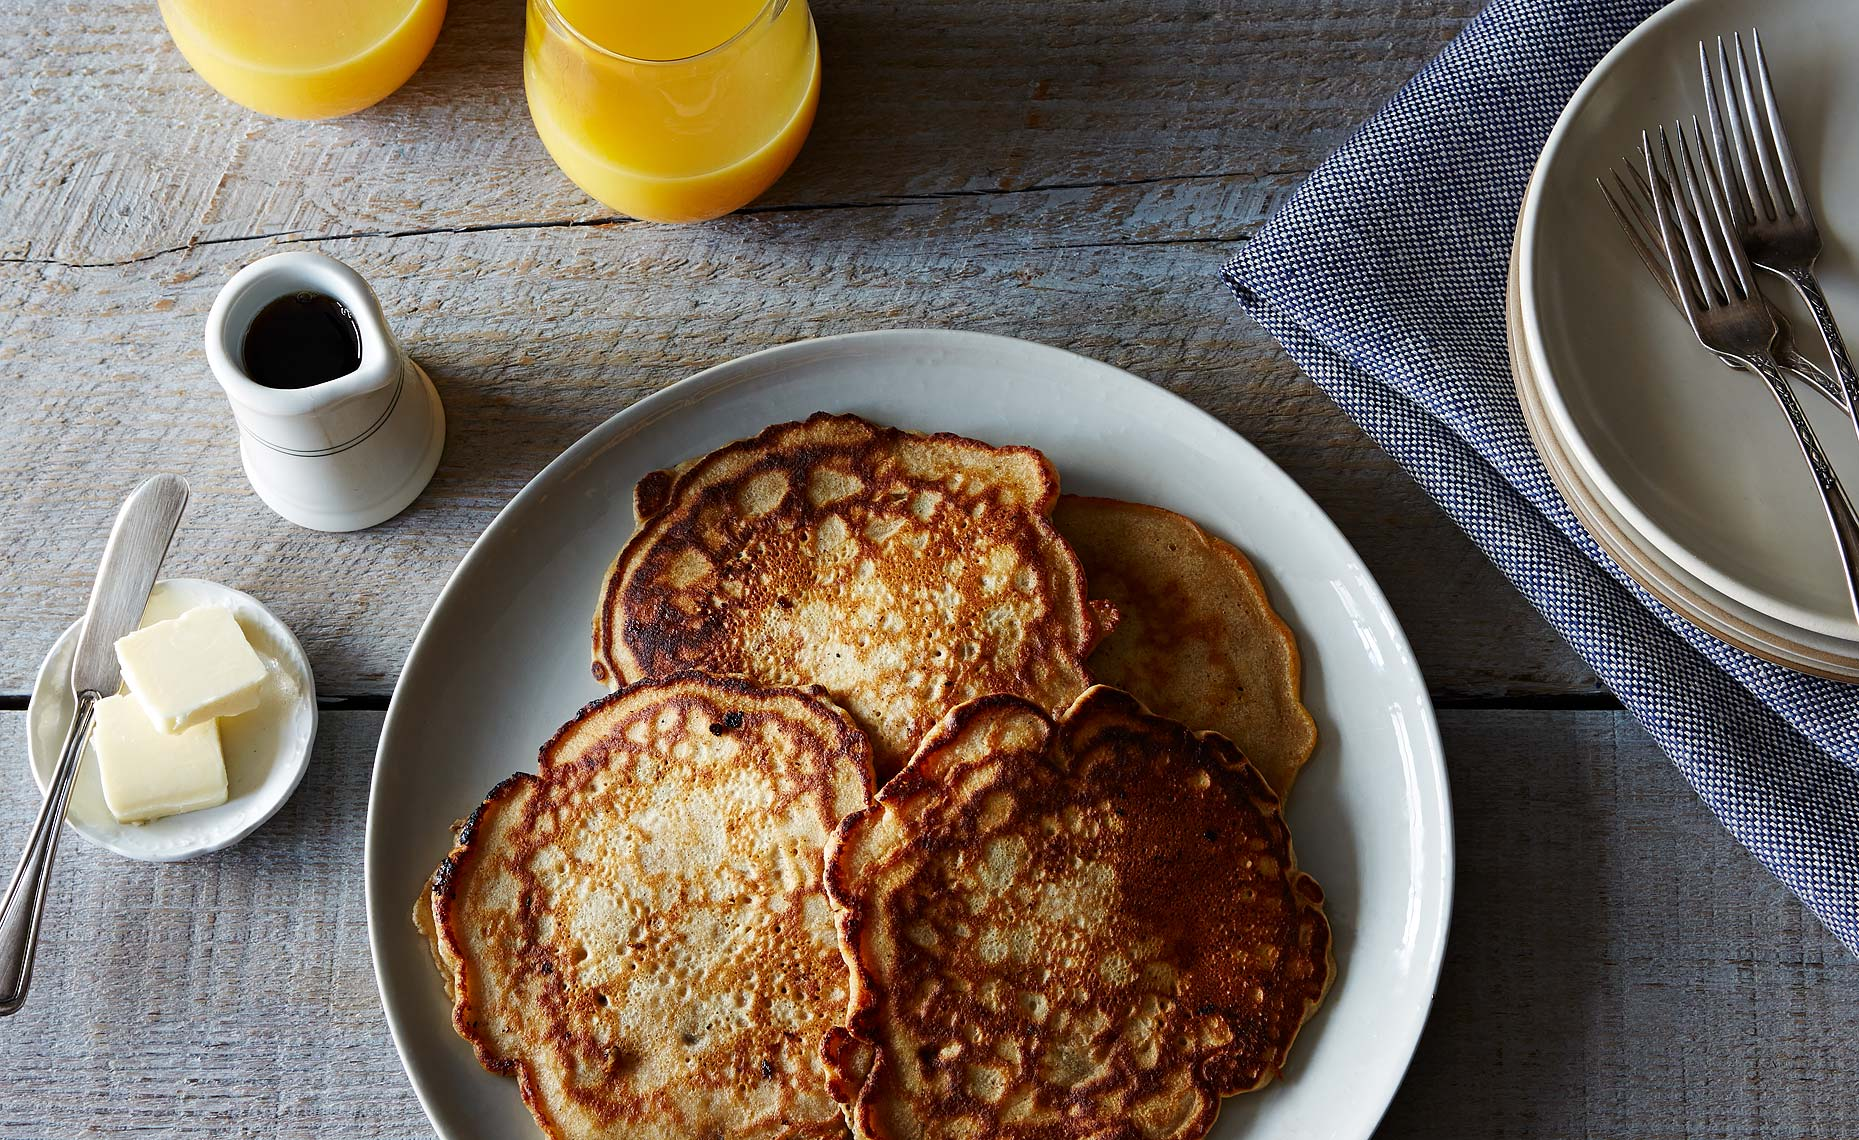 003_mark_weinberg_not-recipes_pancakes_food52_14-05-13_0422